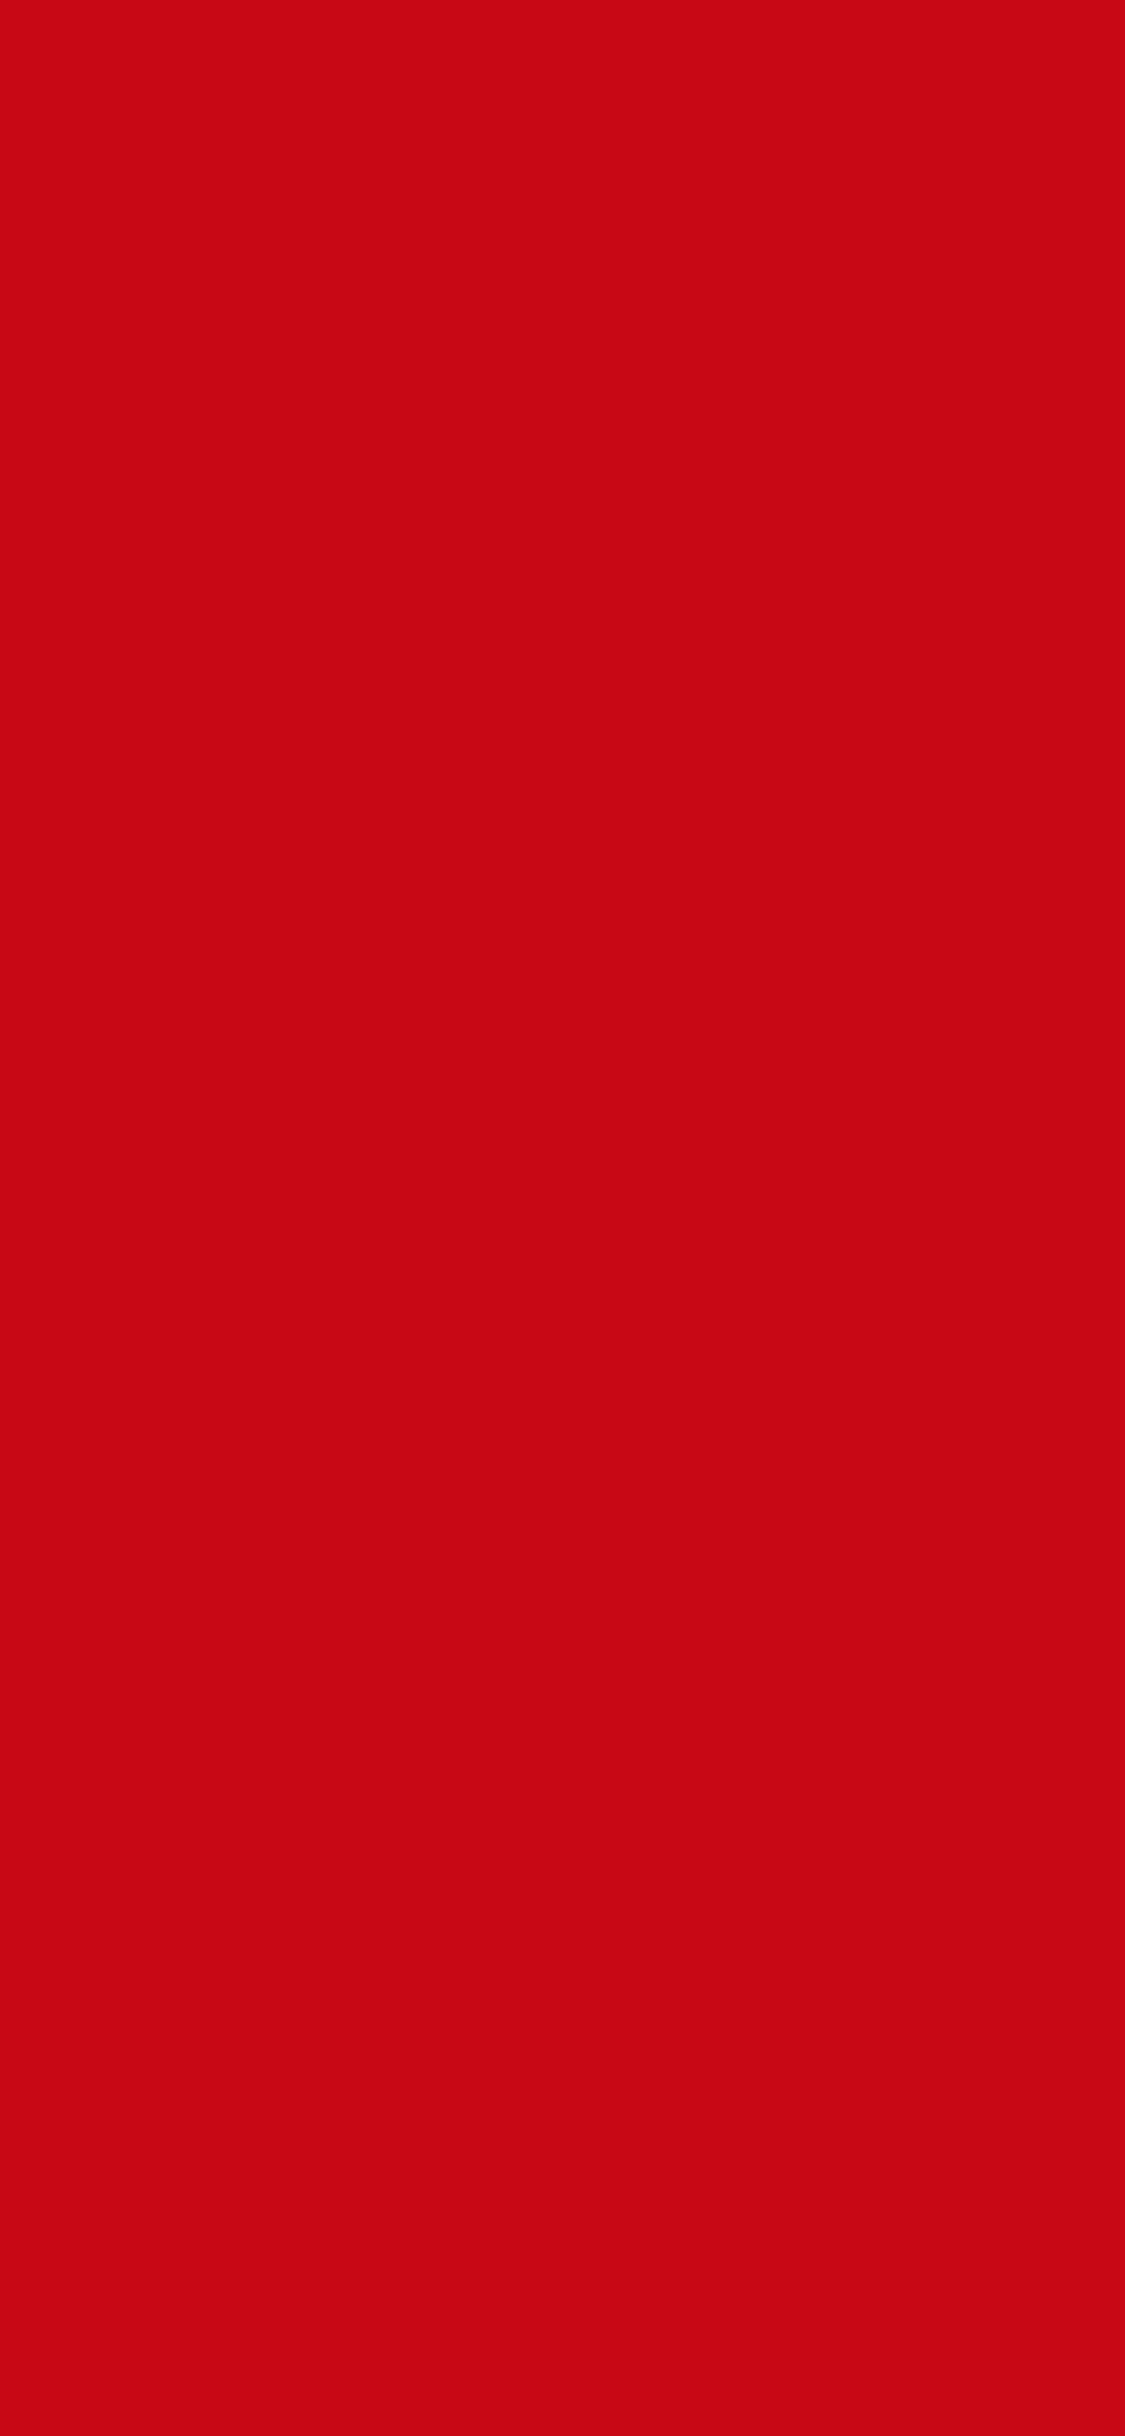 1125x2436 Venetian Red Solid Color Background